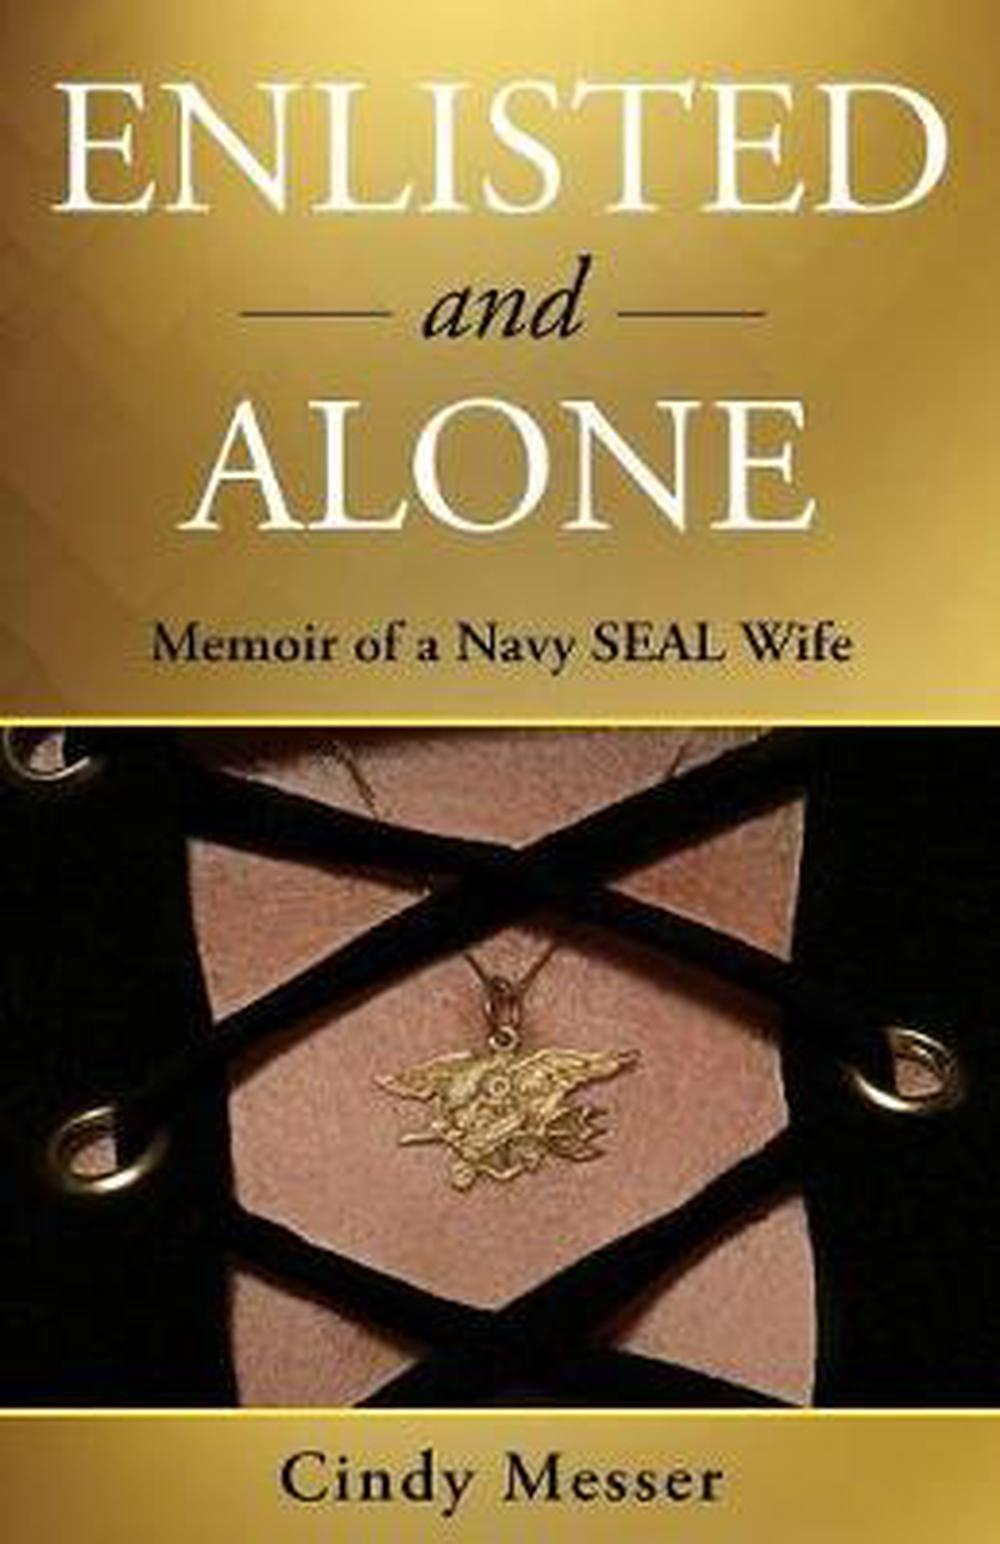 Enlisted And Alone Memoir Of A Navy Seal Wife By Cindy Messer